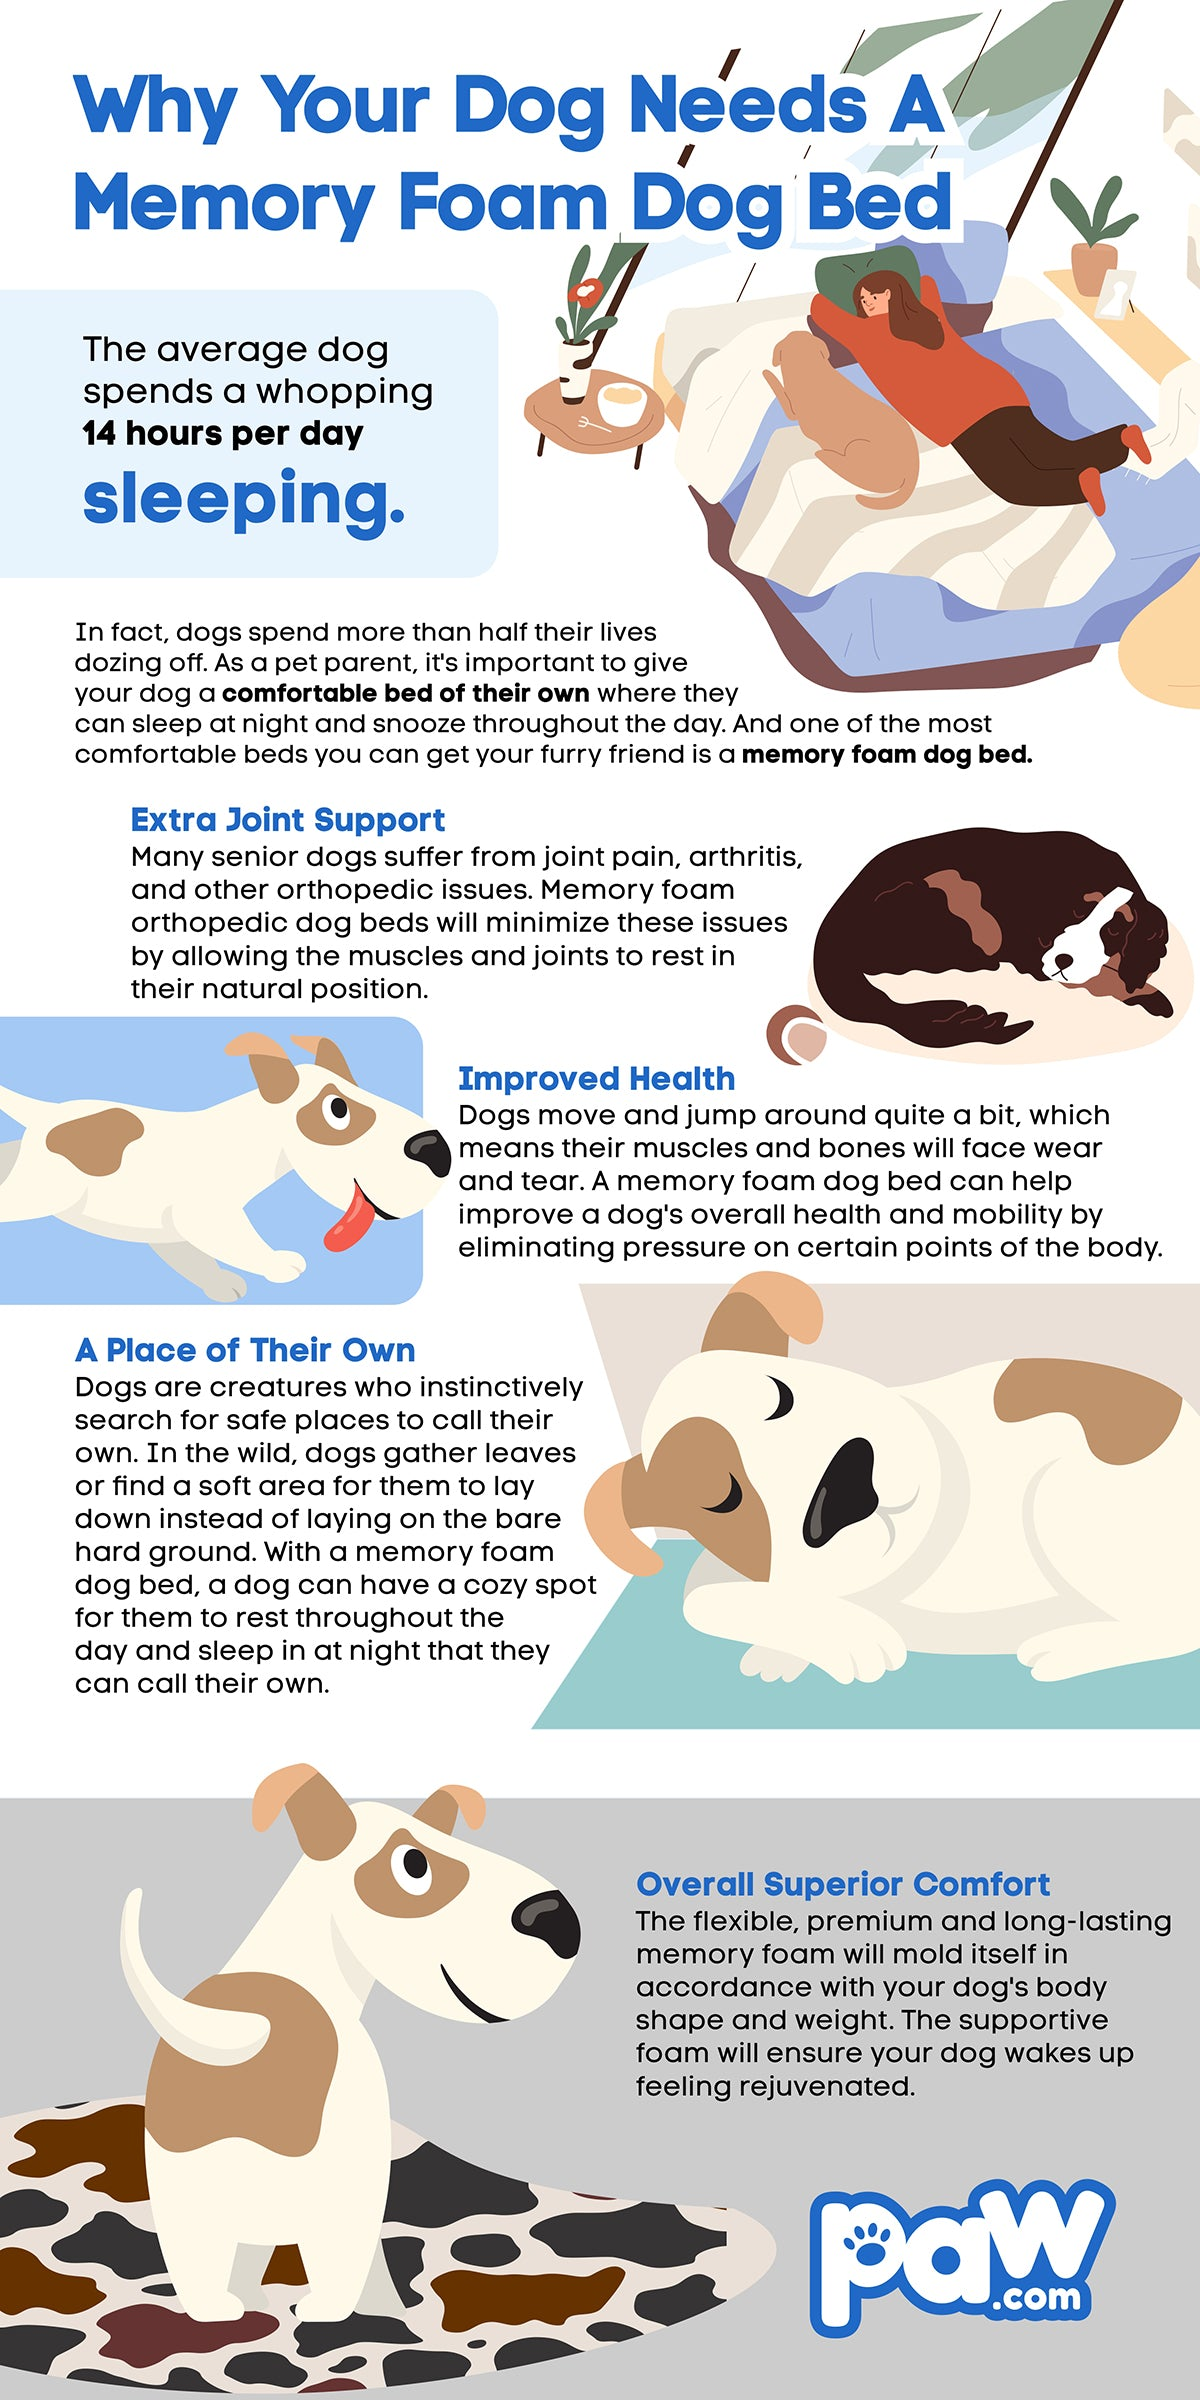 Benefits of a Memory Foam Dog Bed